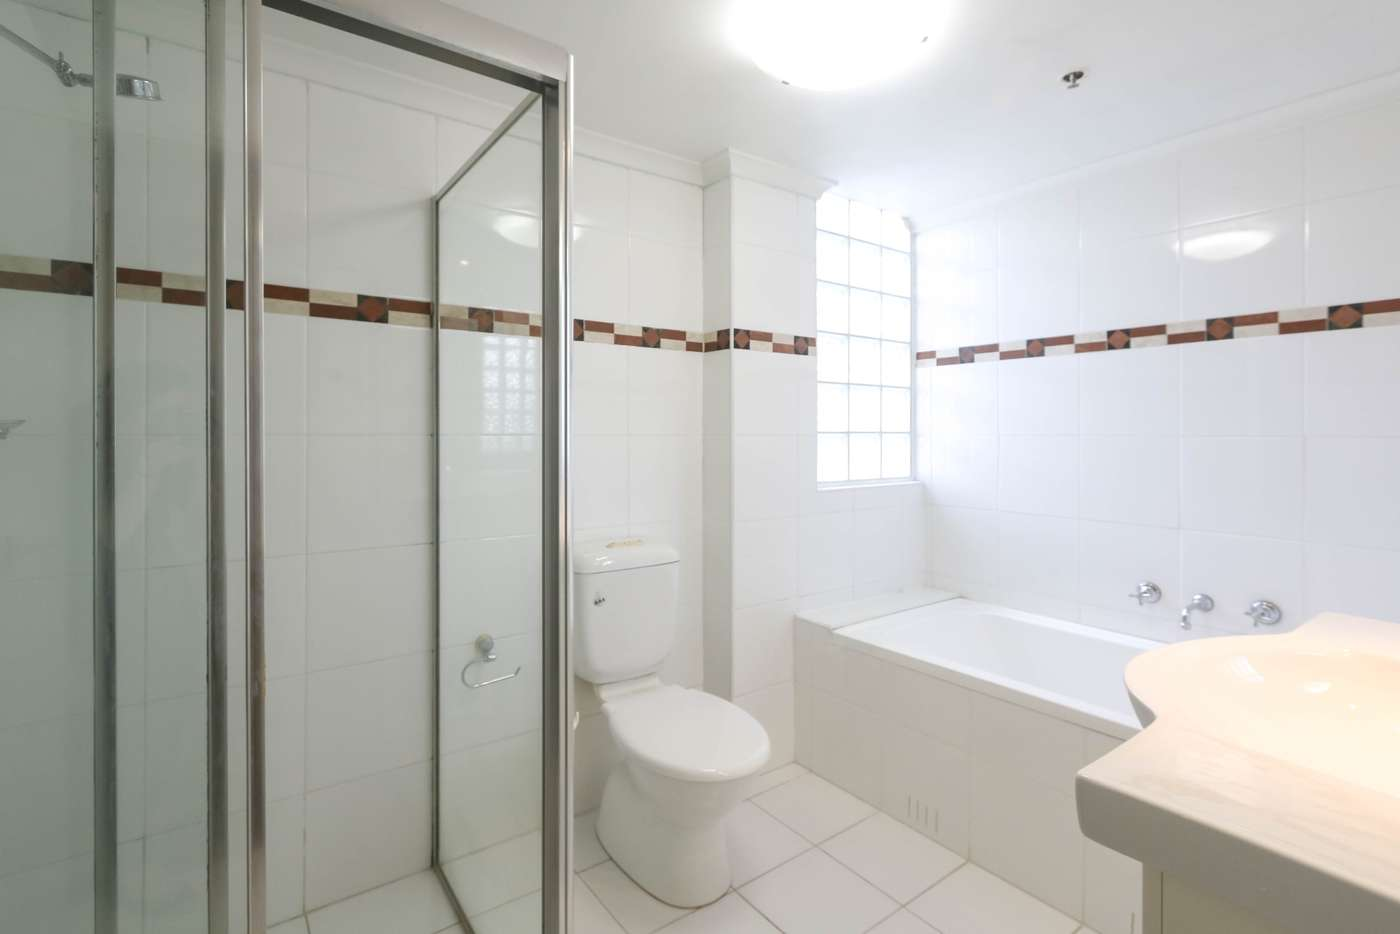 Seventh view of Homely apartment listing, 569 George Street, Sydney NSW 2000